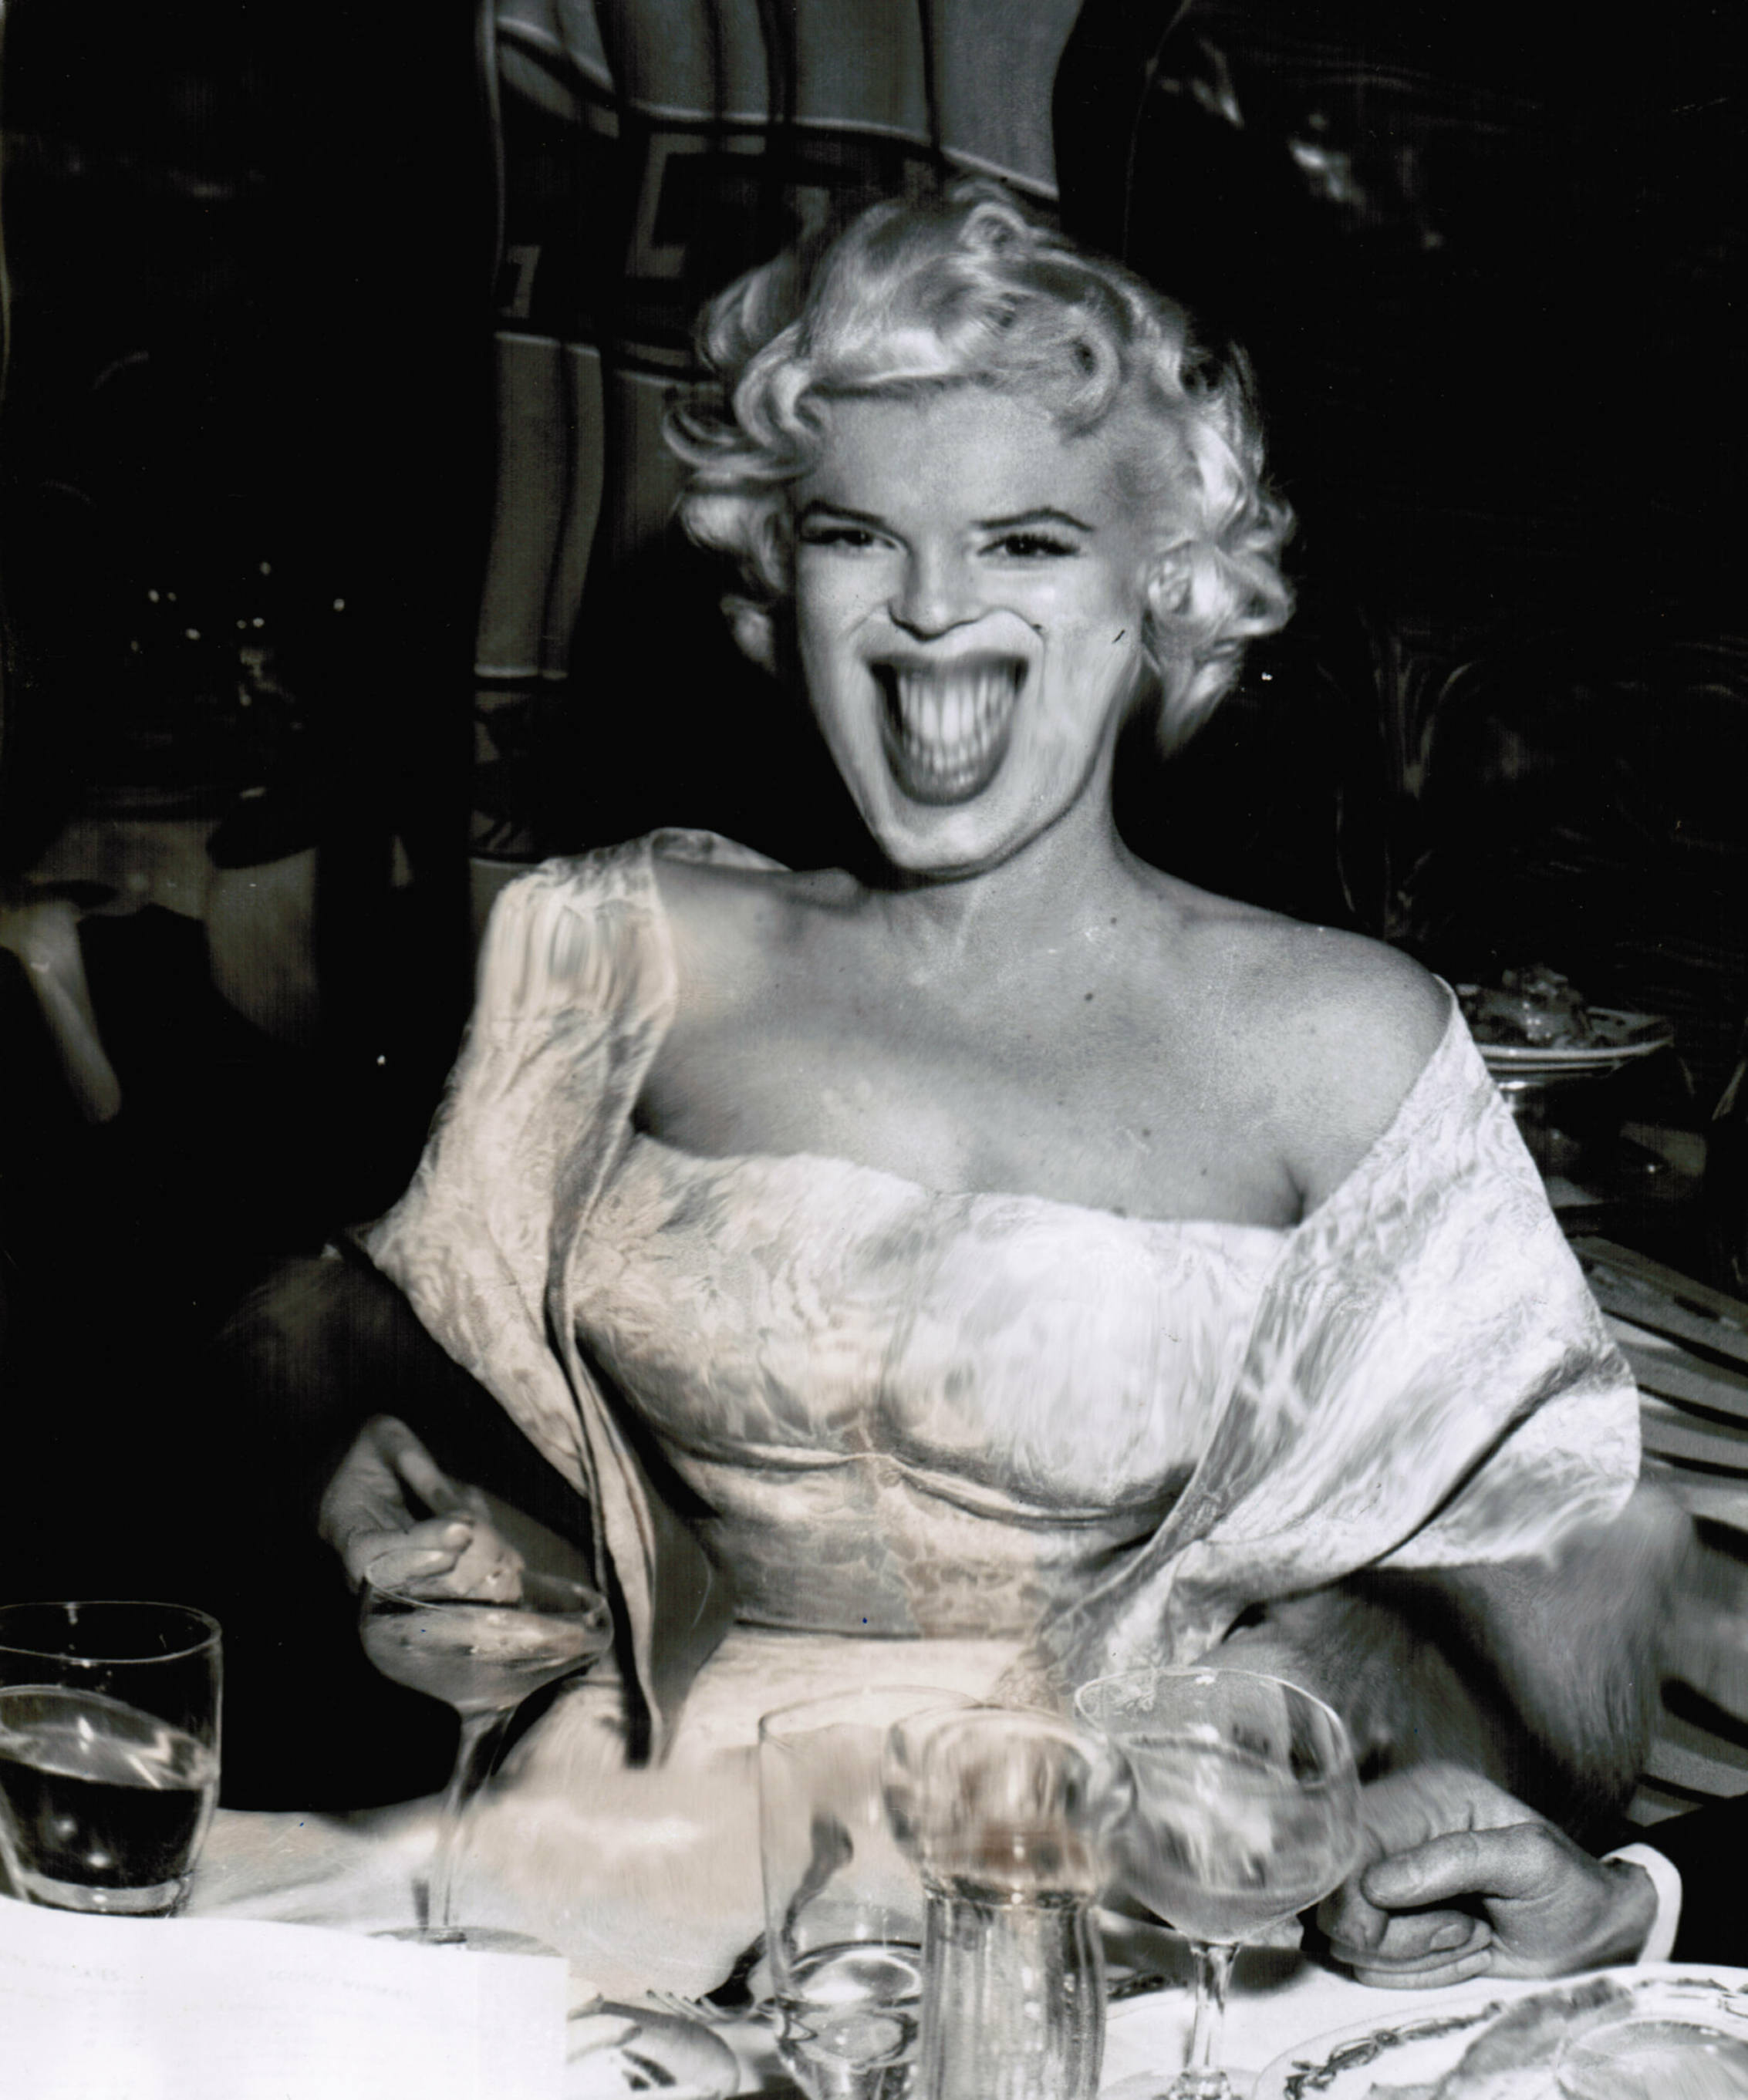 Weege, Distorted Marilyn, 1955